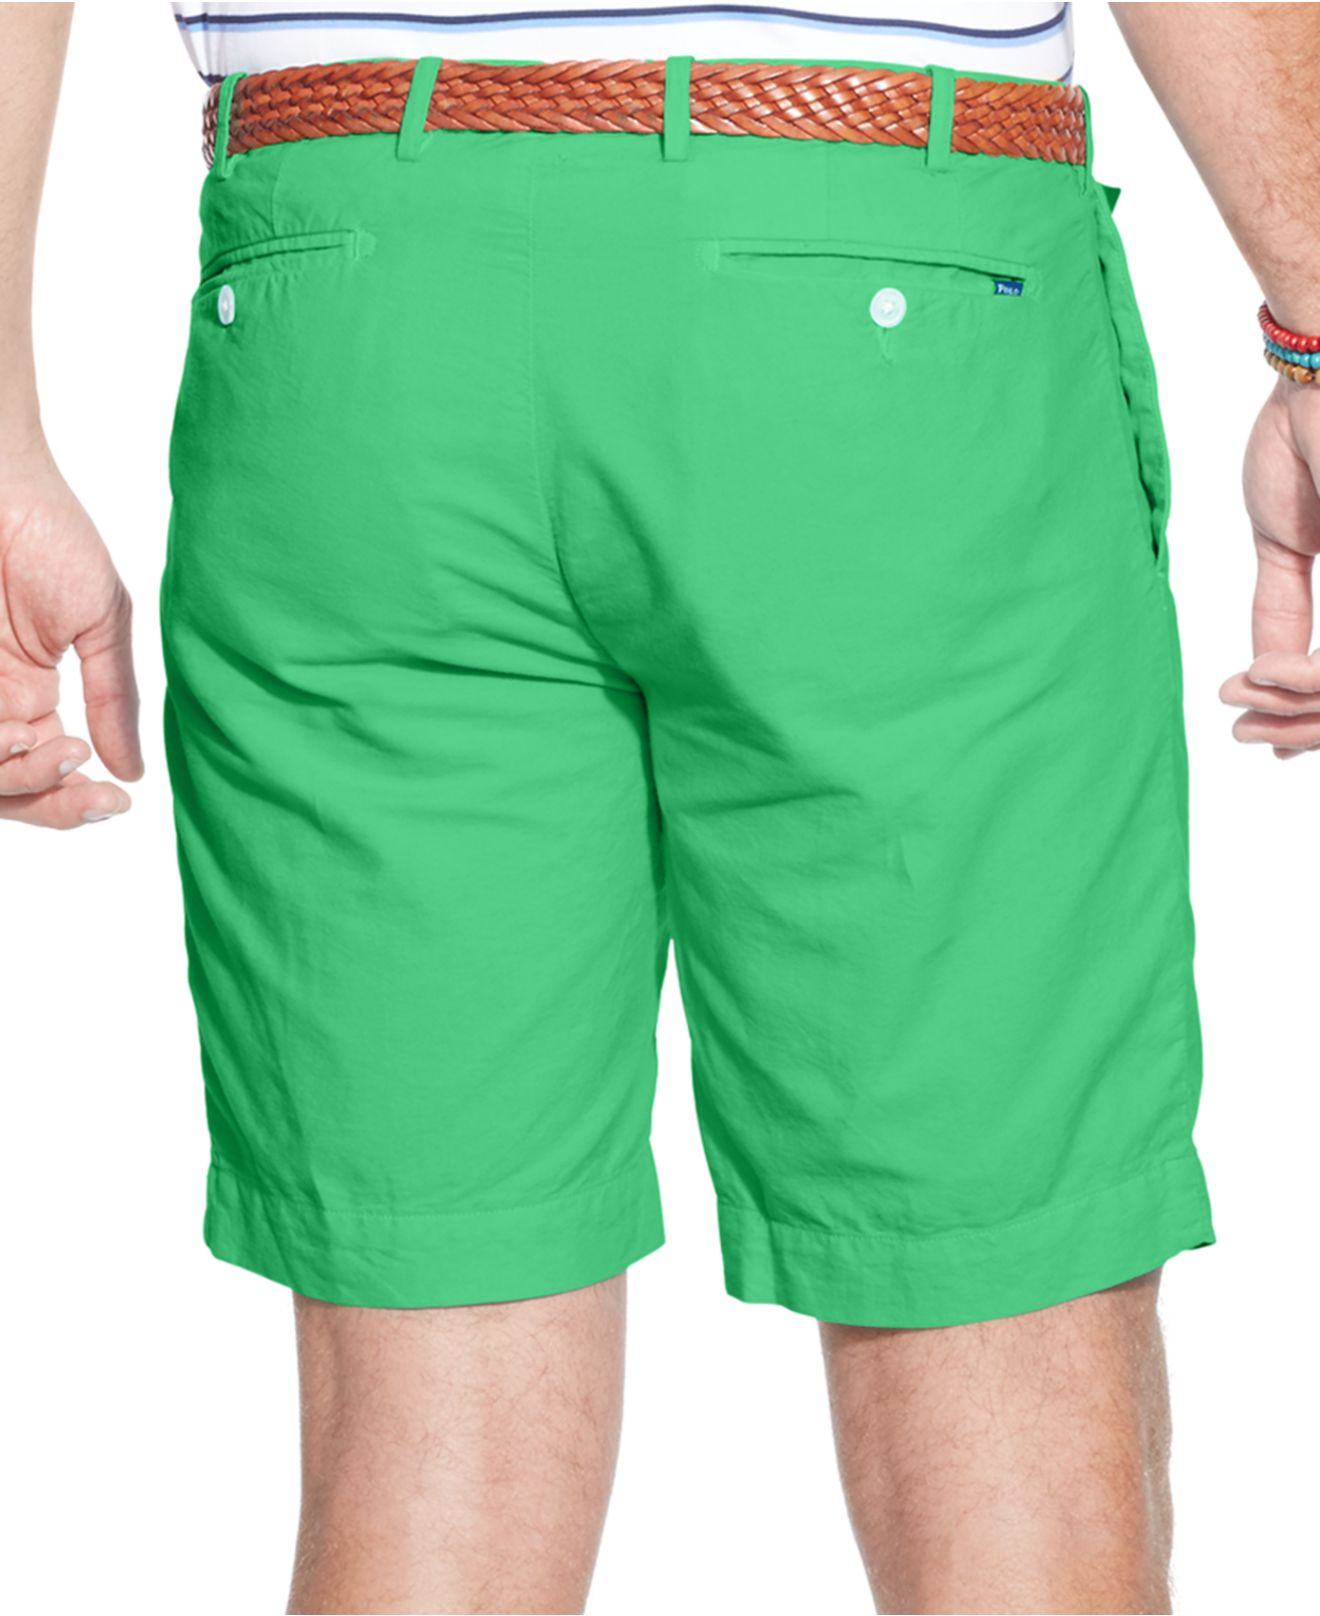 Lyst - Polo Ralph Lauren Big And Tall Newport Cargo Shorts in Green for Men